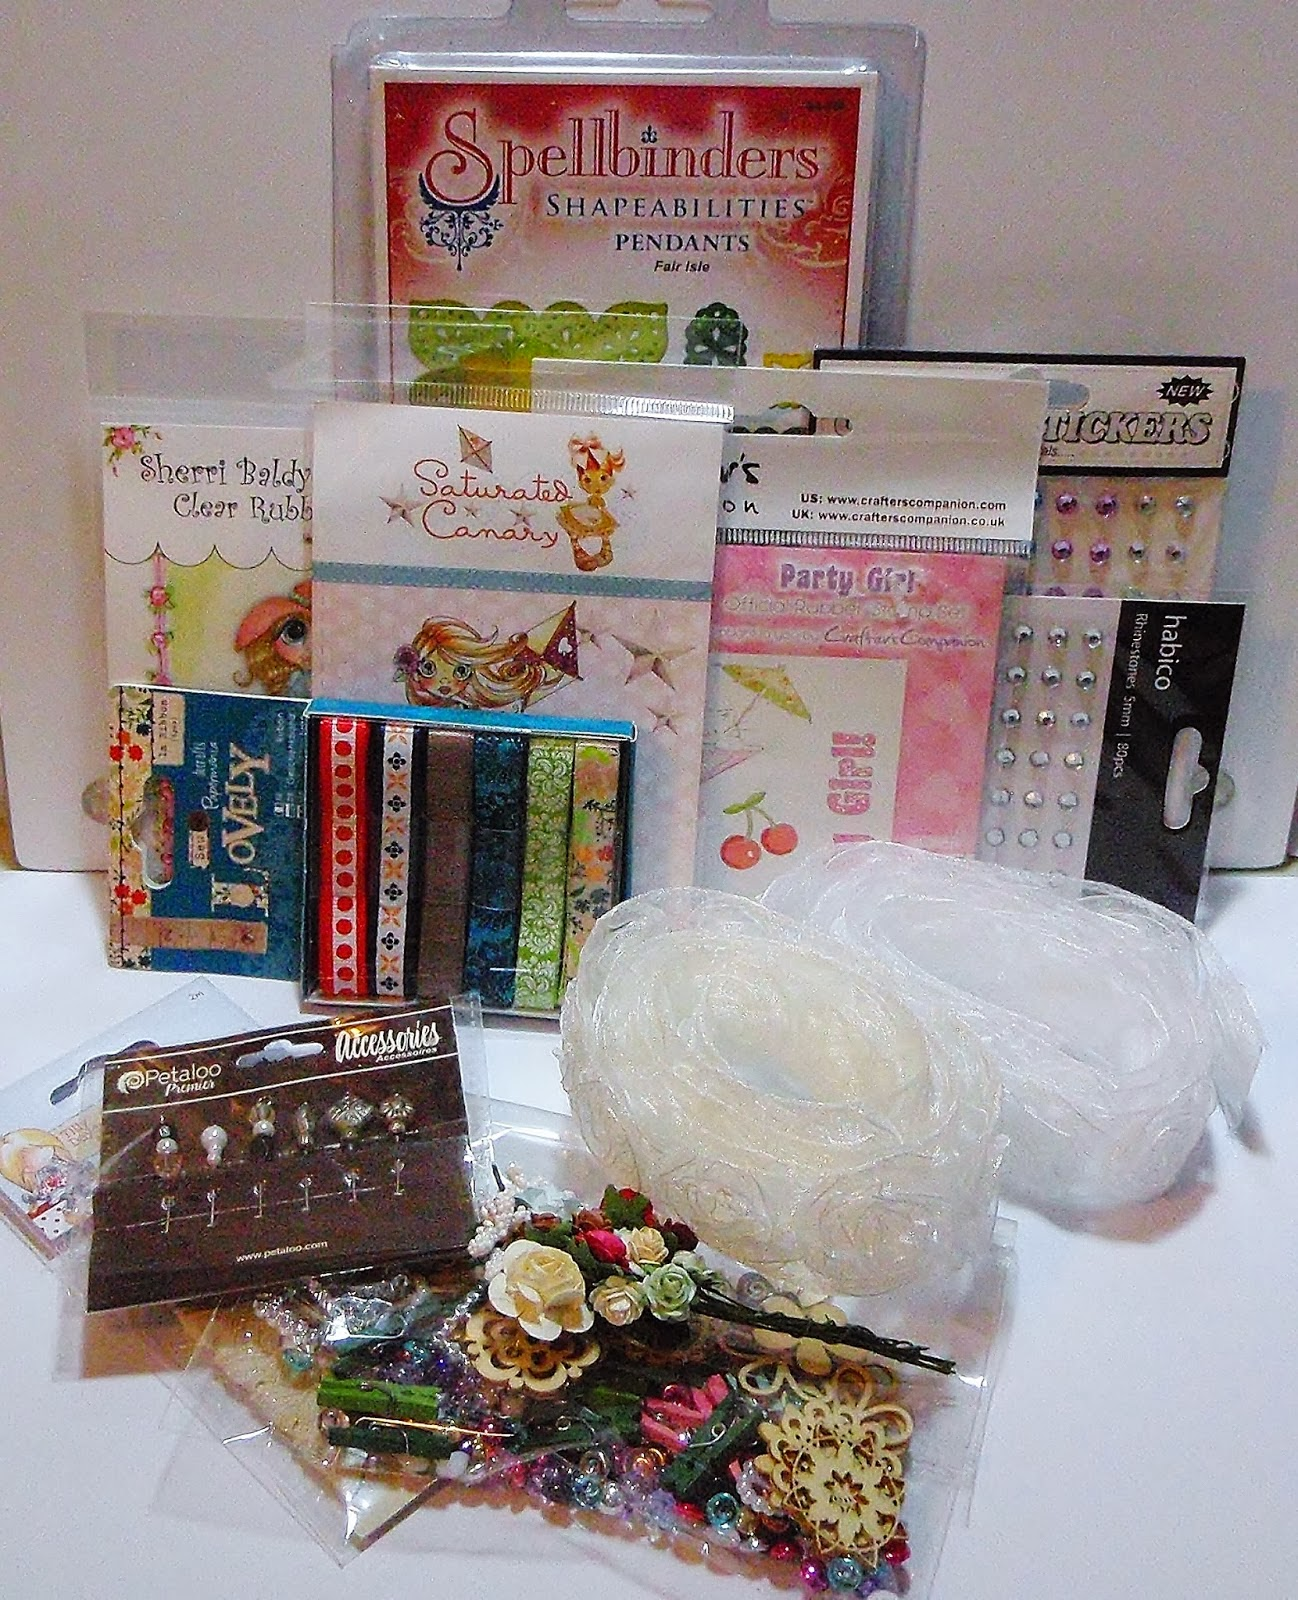 Check out Mags amazing candy click on the image to be in with a chance to win it